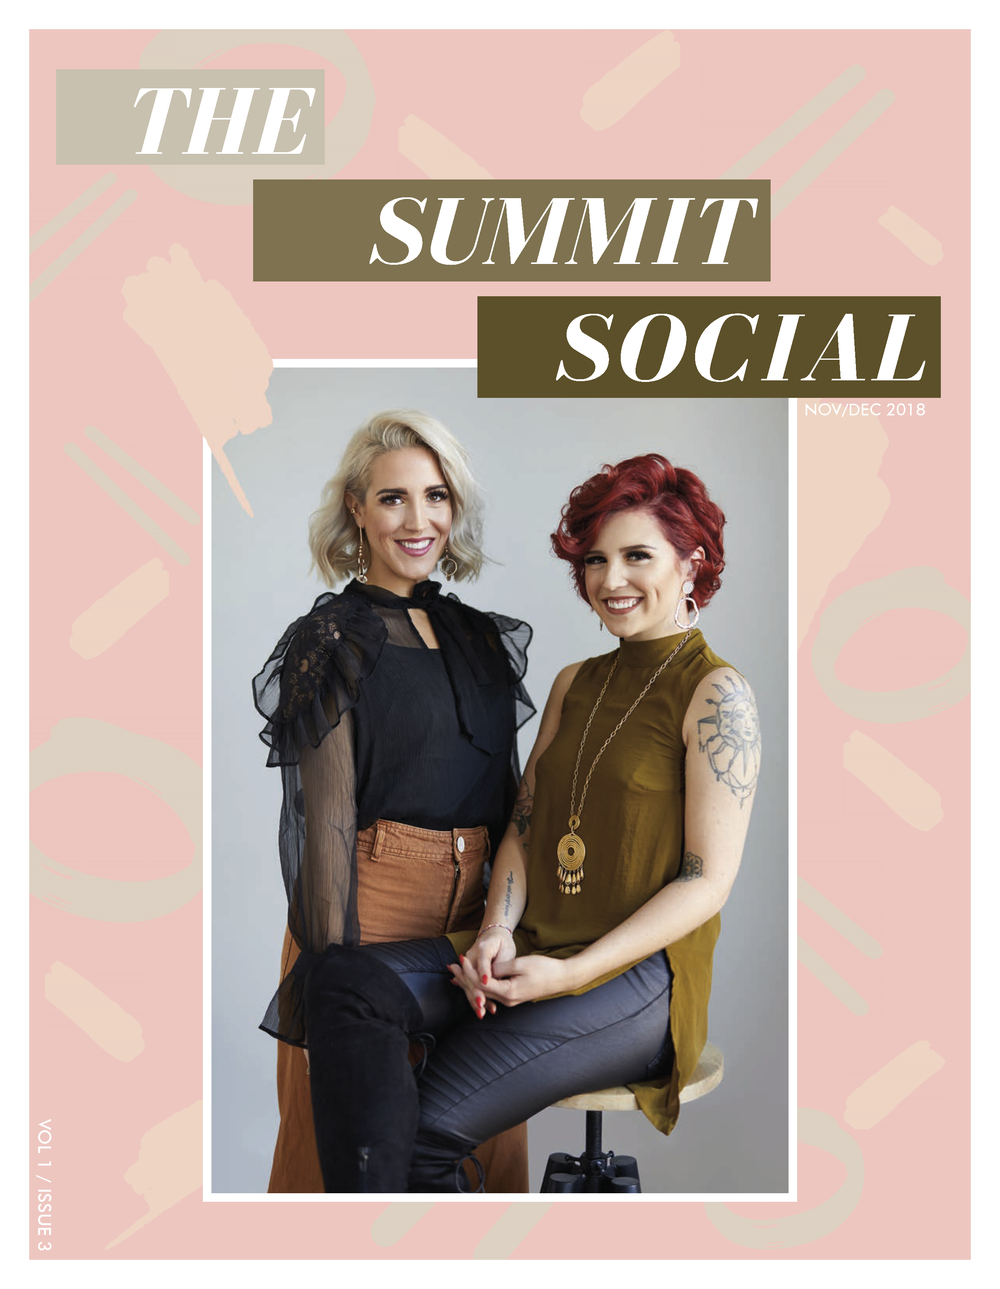 The Summit Social Nov Dec 2018 web_Page_1.png